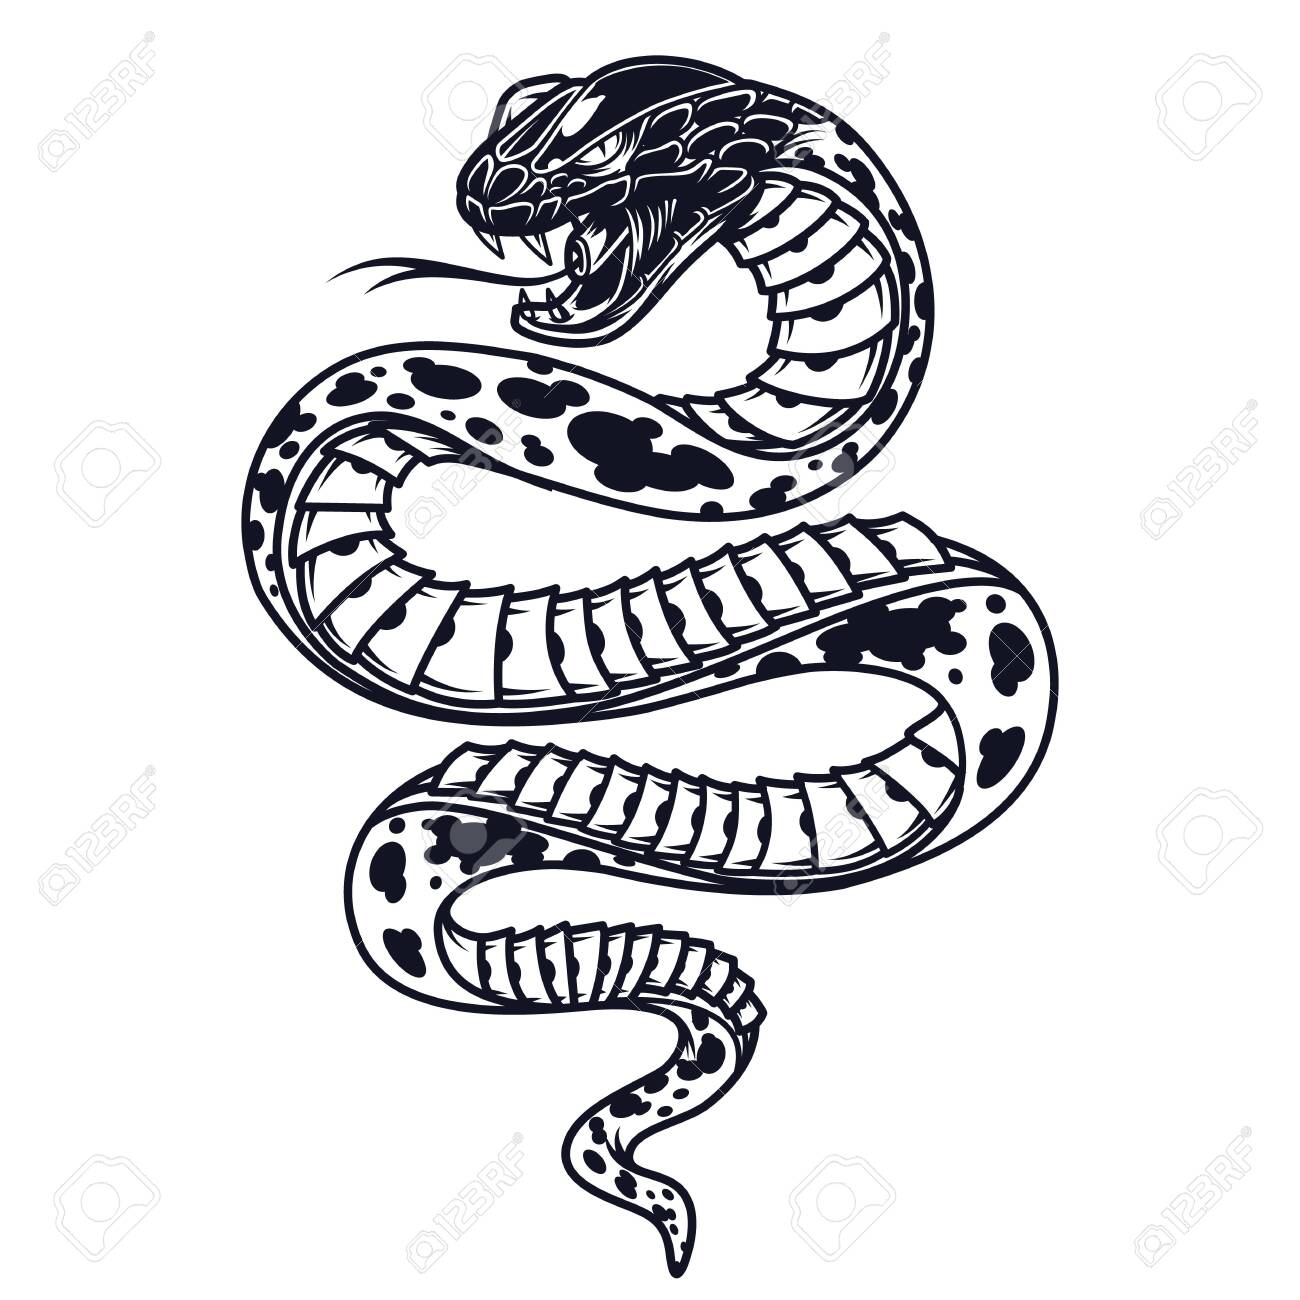 Vintage poisonous snake template in monochrome style isolated vector illustration - 131930050